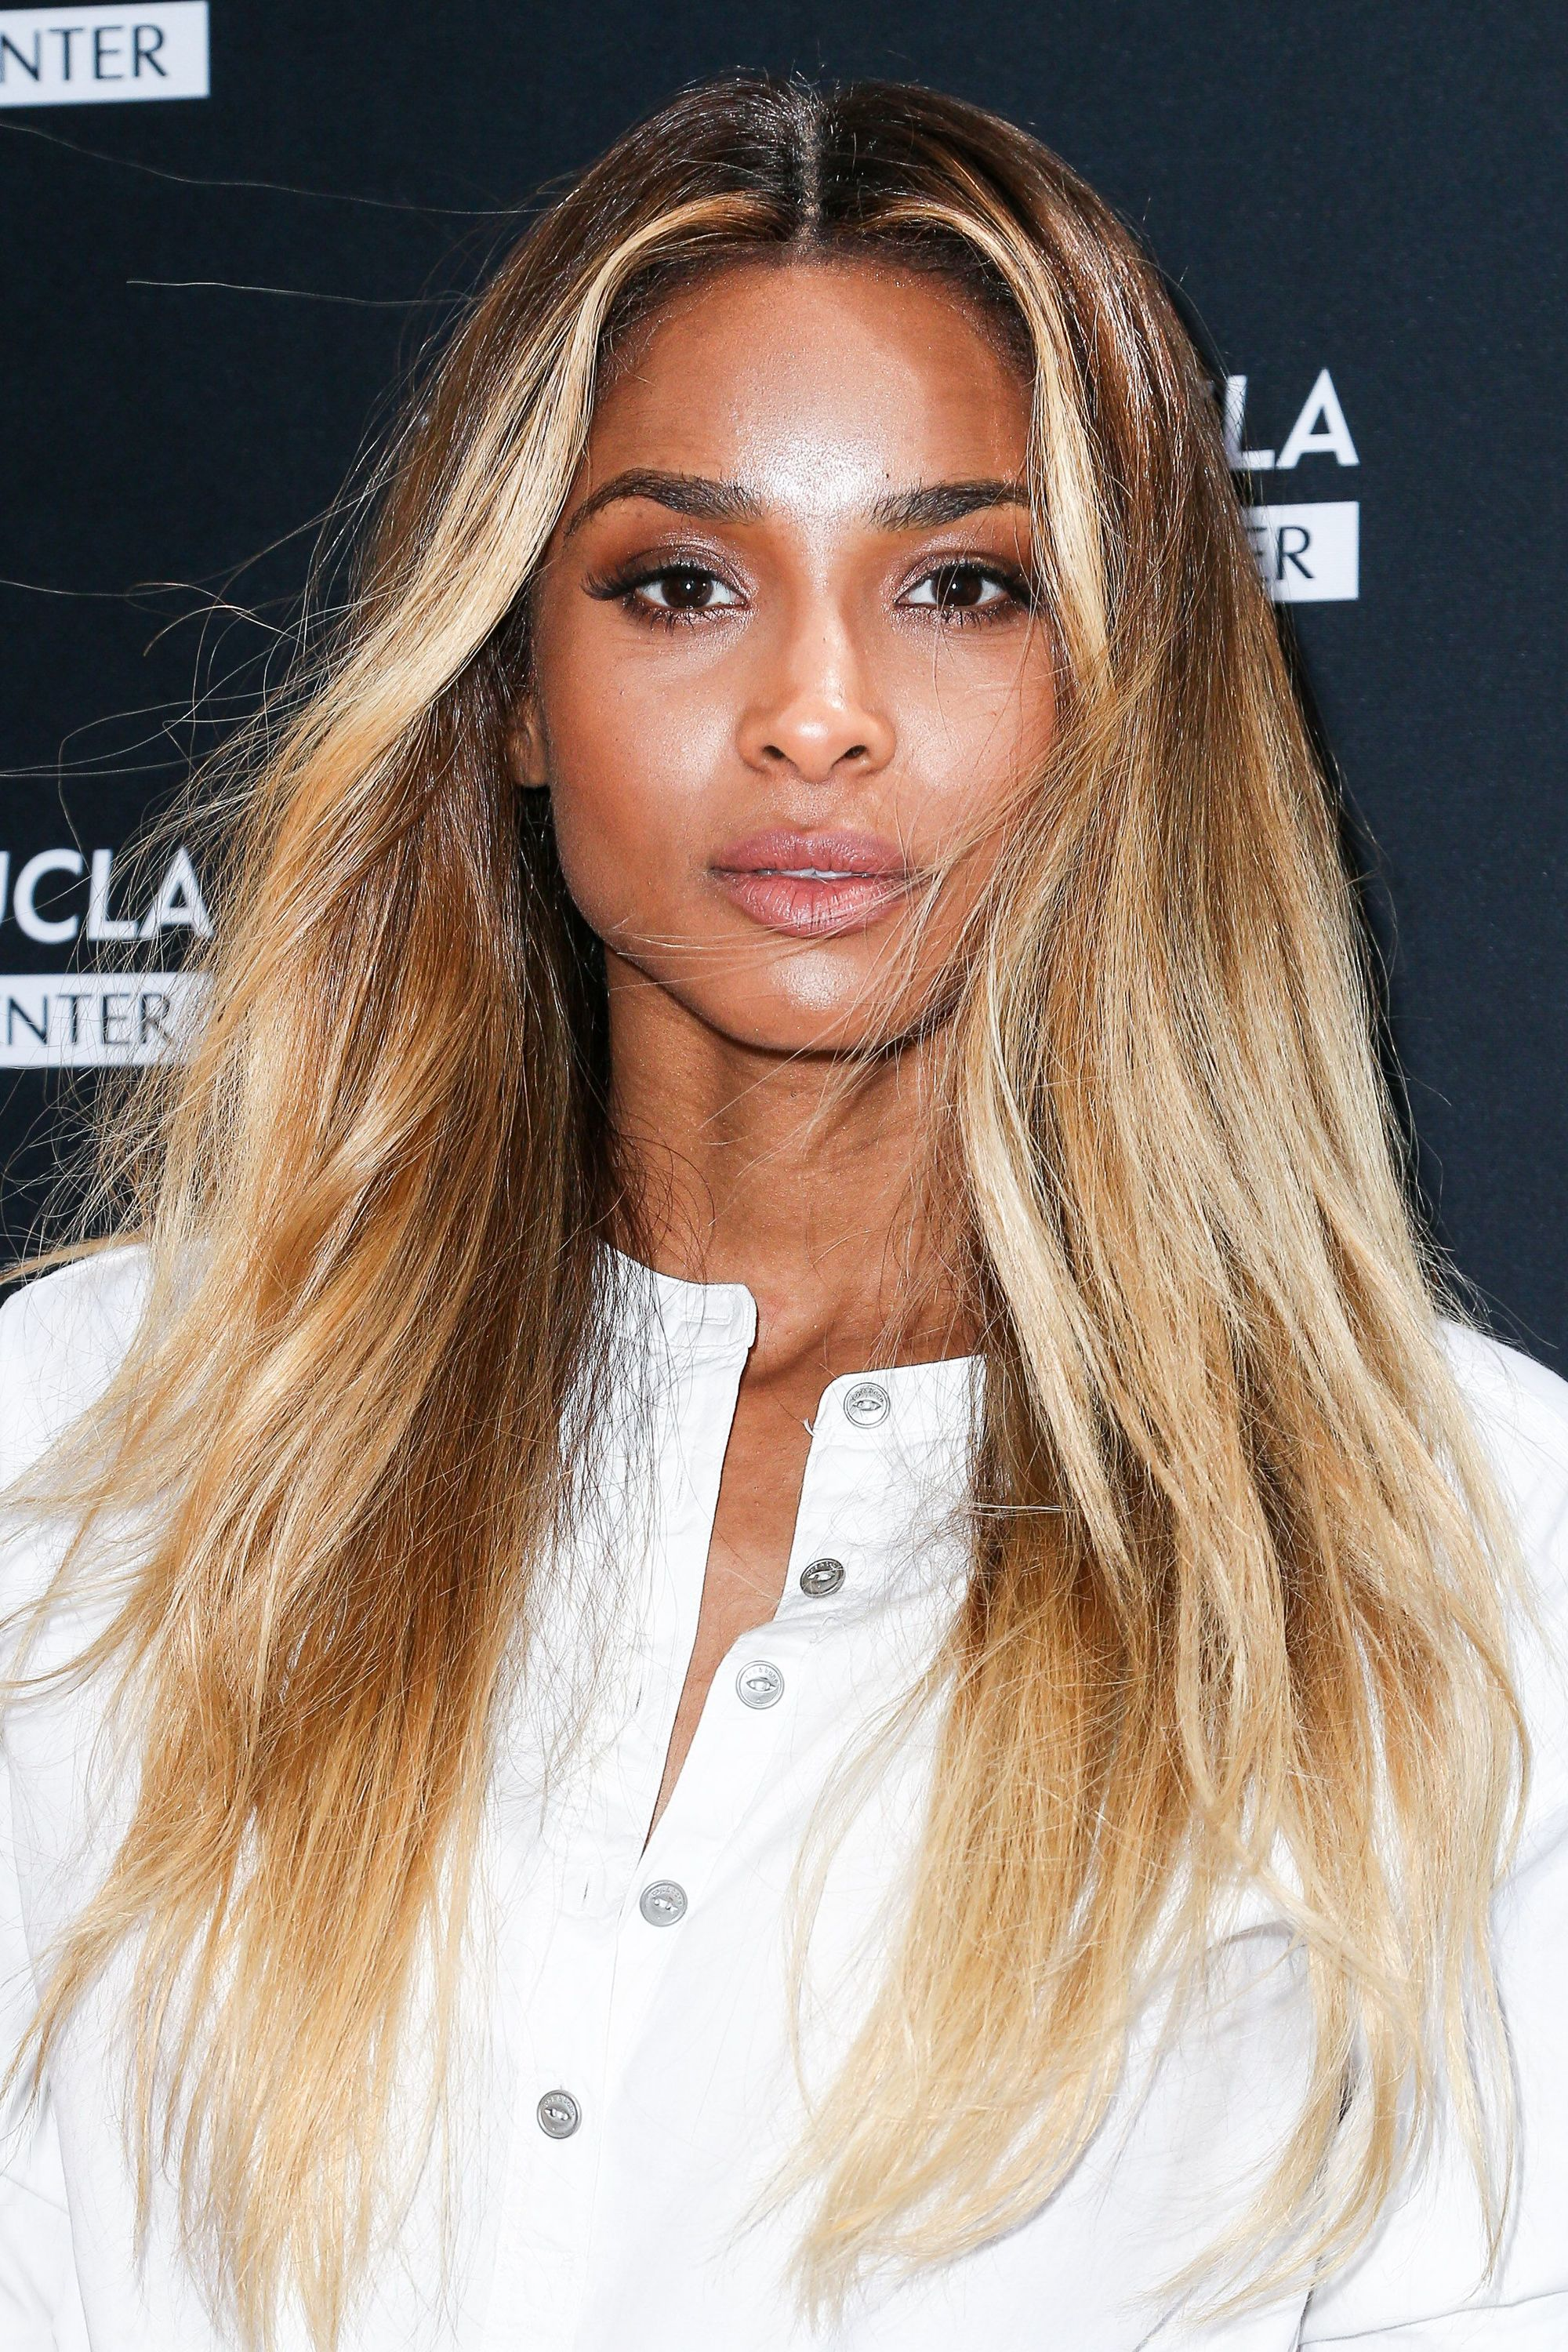 Mane moments: See Ciara's amazing hair evolution, here